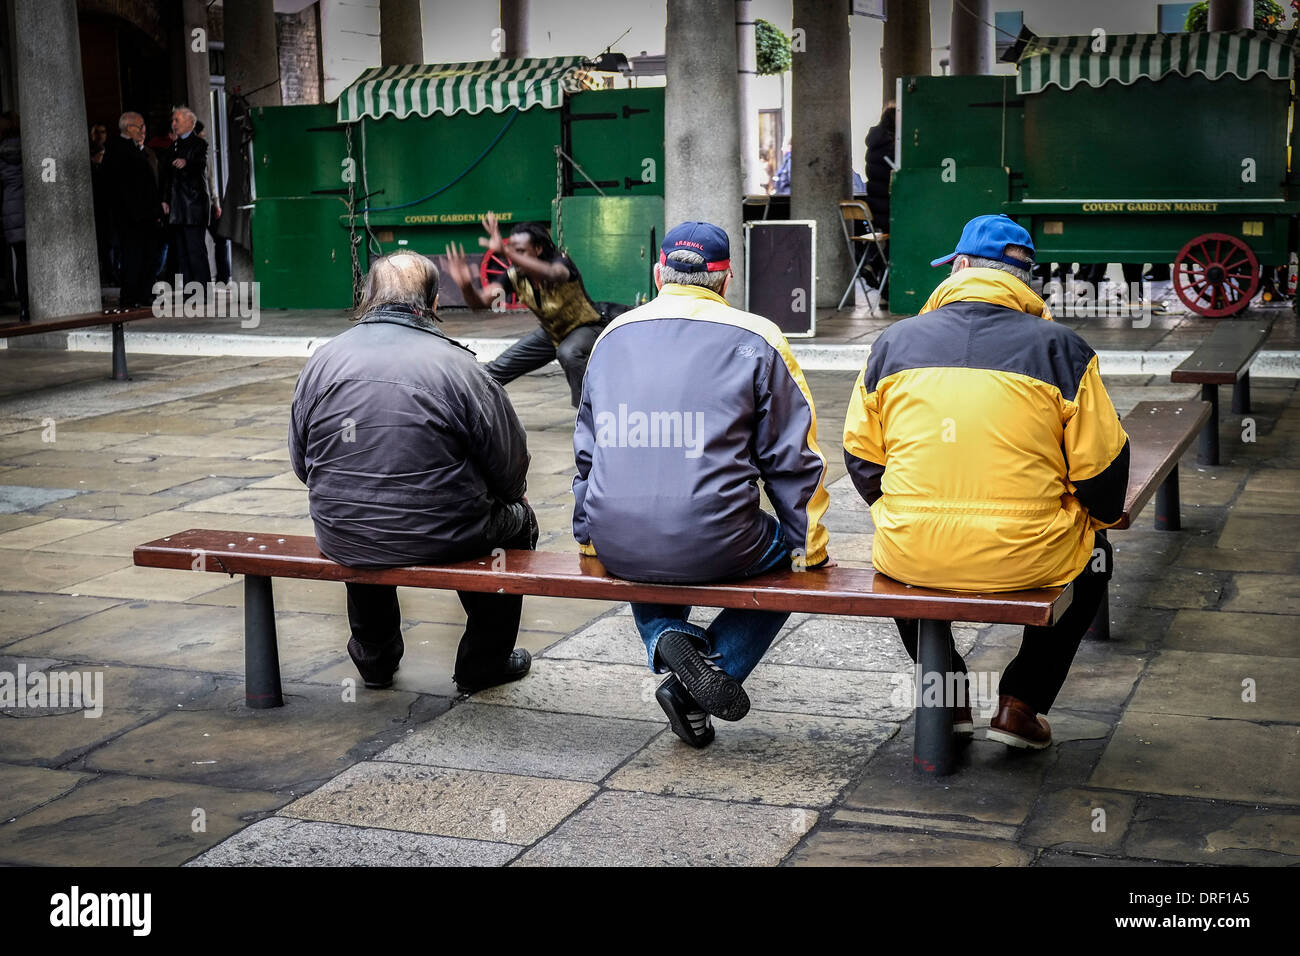 Three men watching a street entertainer in the North Hall in Covent Garden. - Stock Image